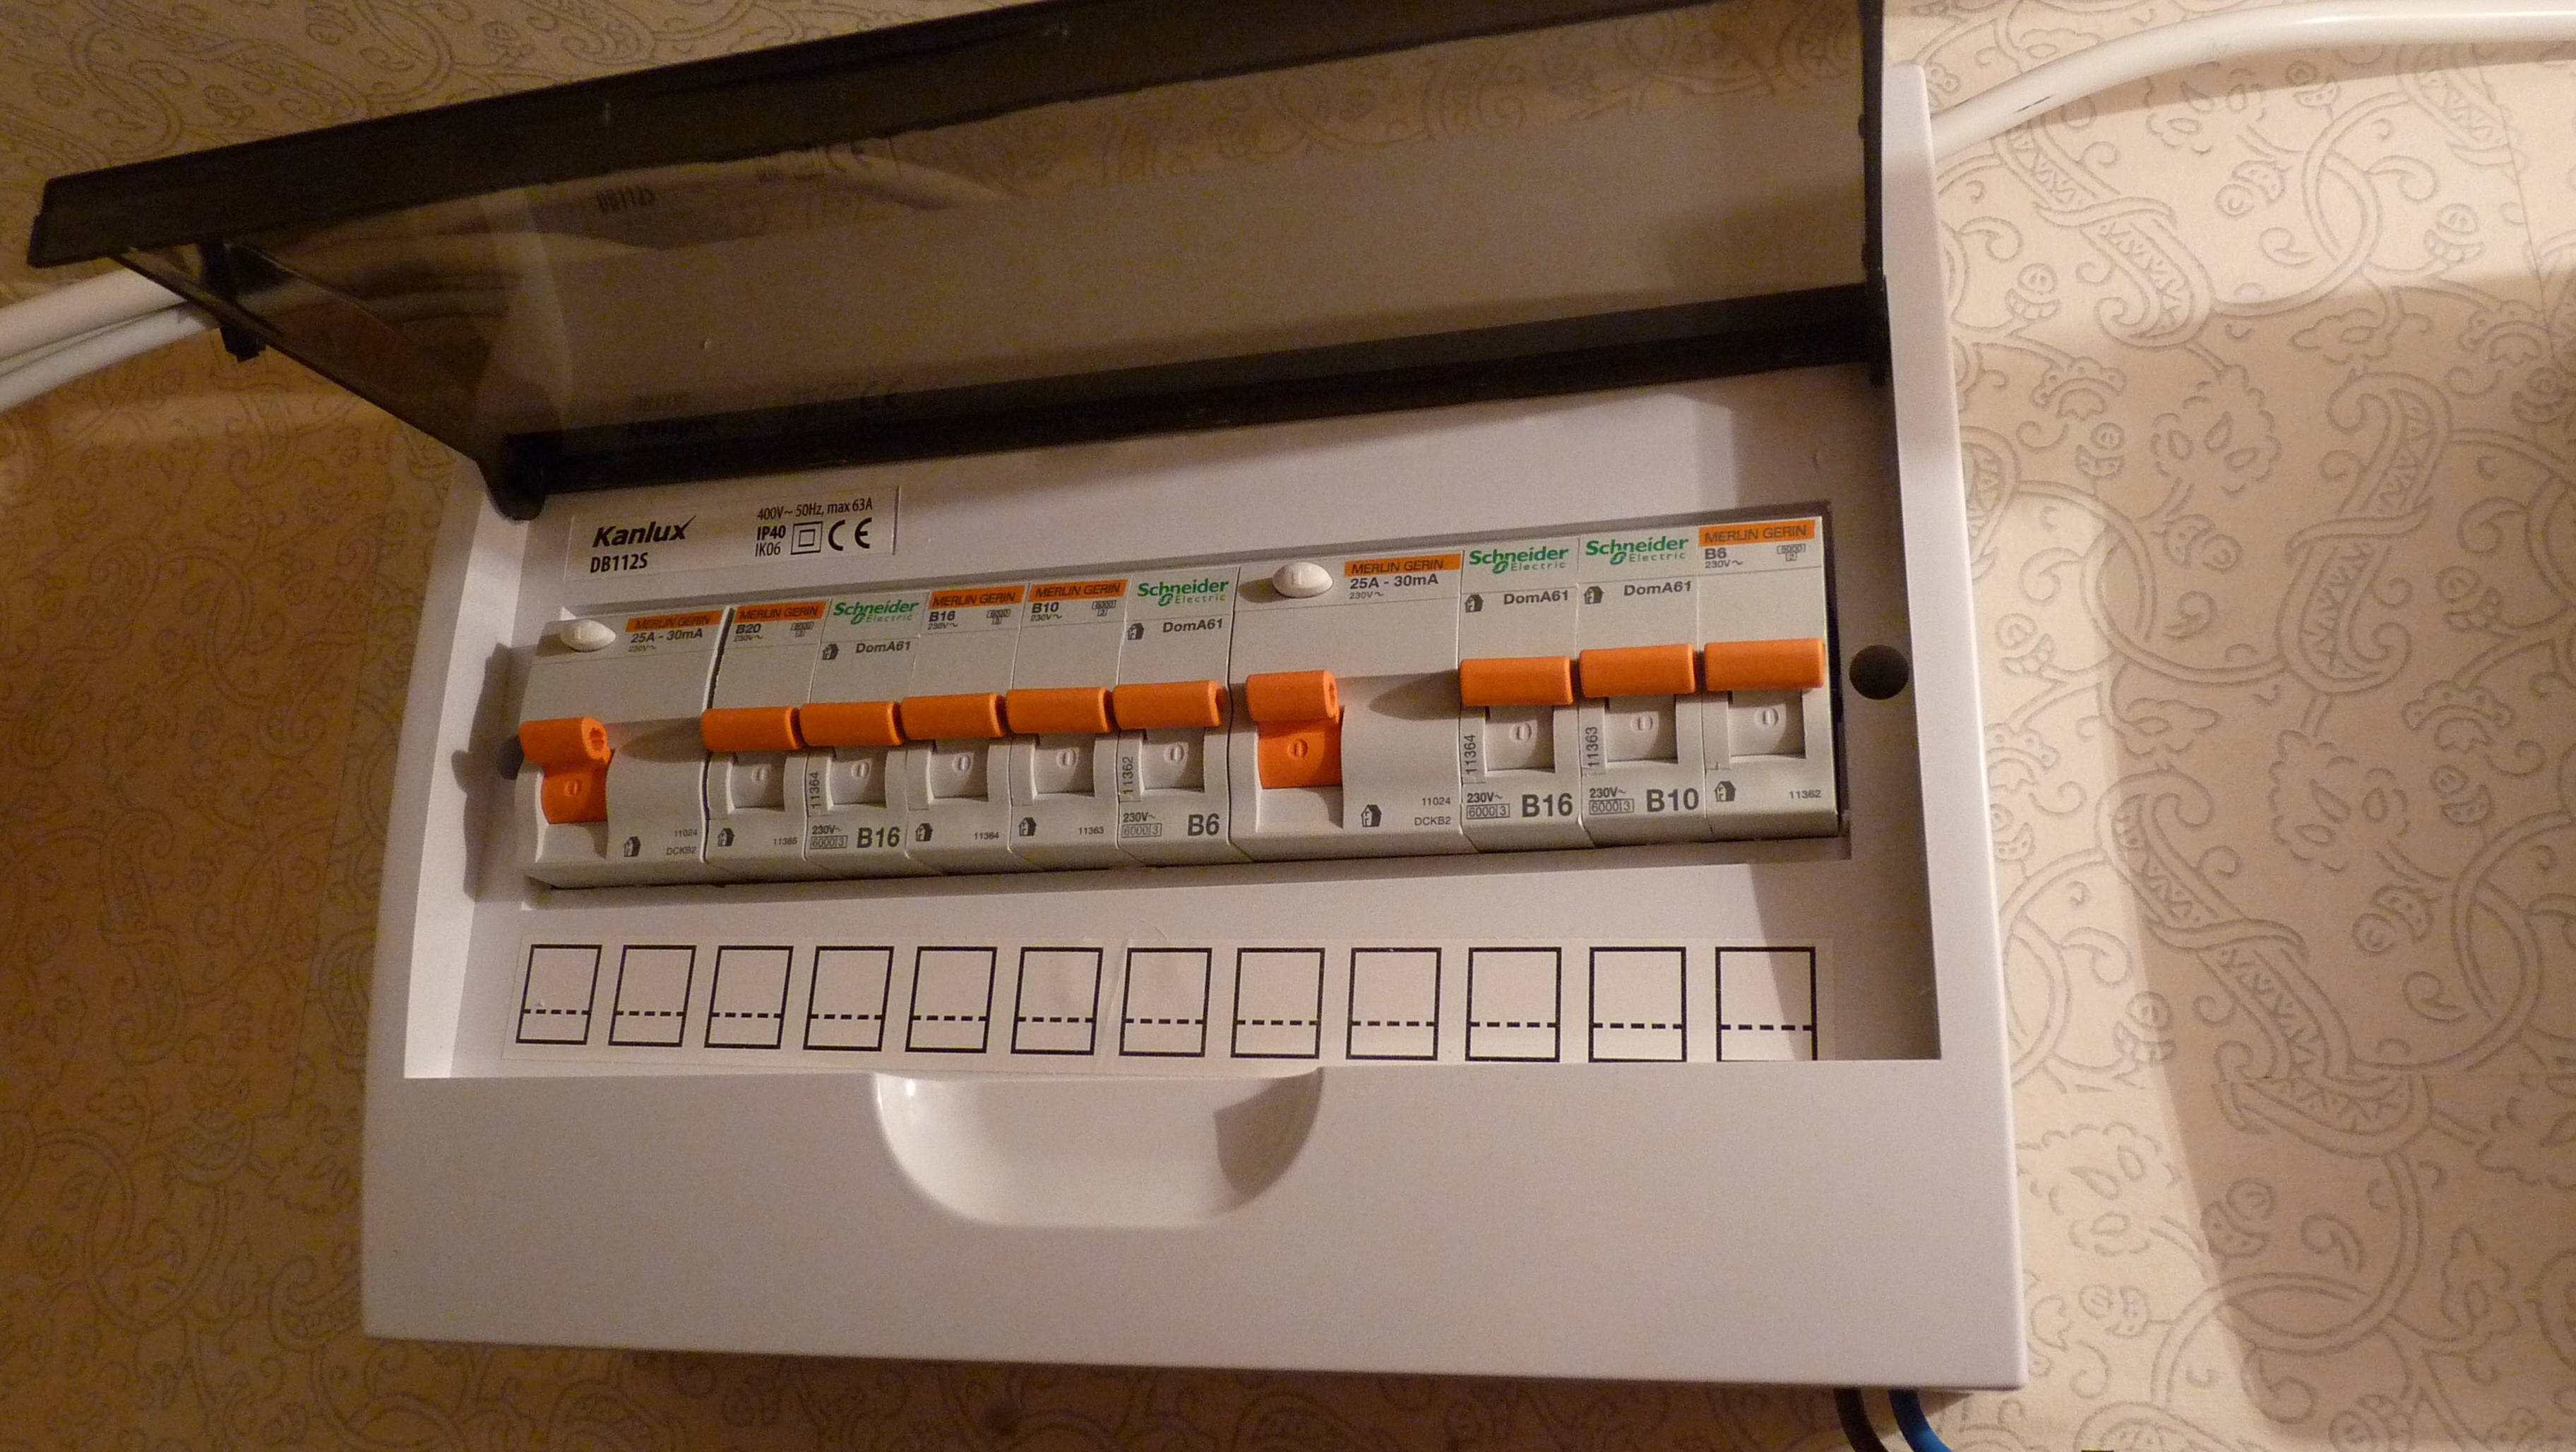 Fuse Box Control Wiring Diagram Mini How To Repair A In 24 7 Home Rescue Rh 247homerescue Co Uk Replacement Breaker